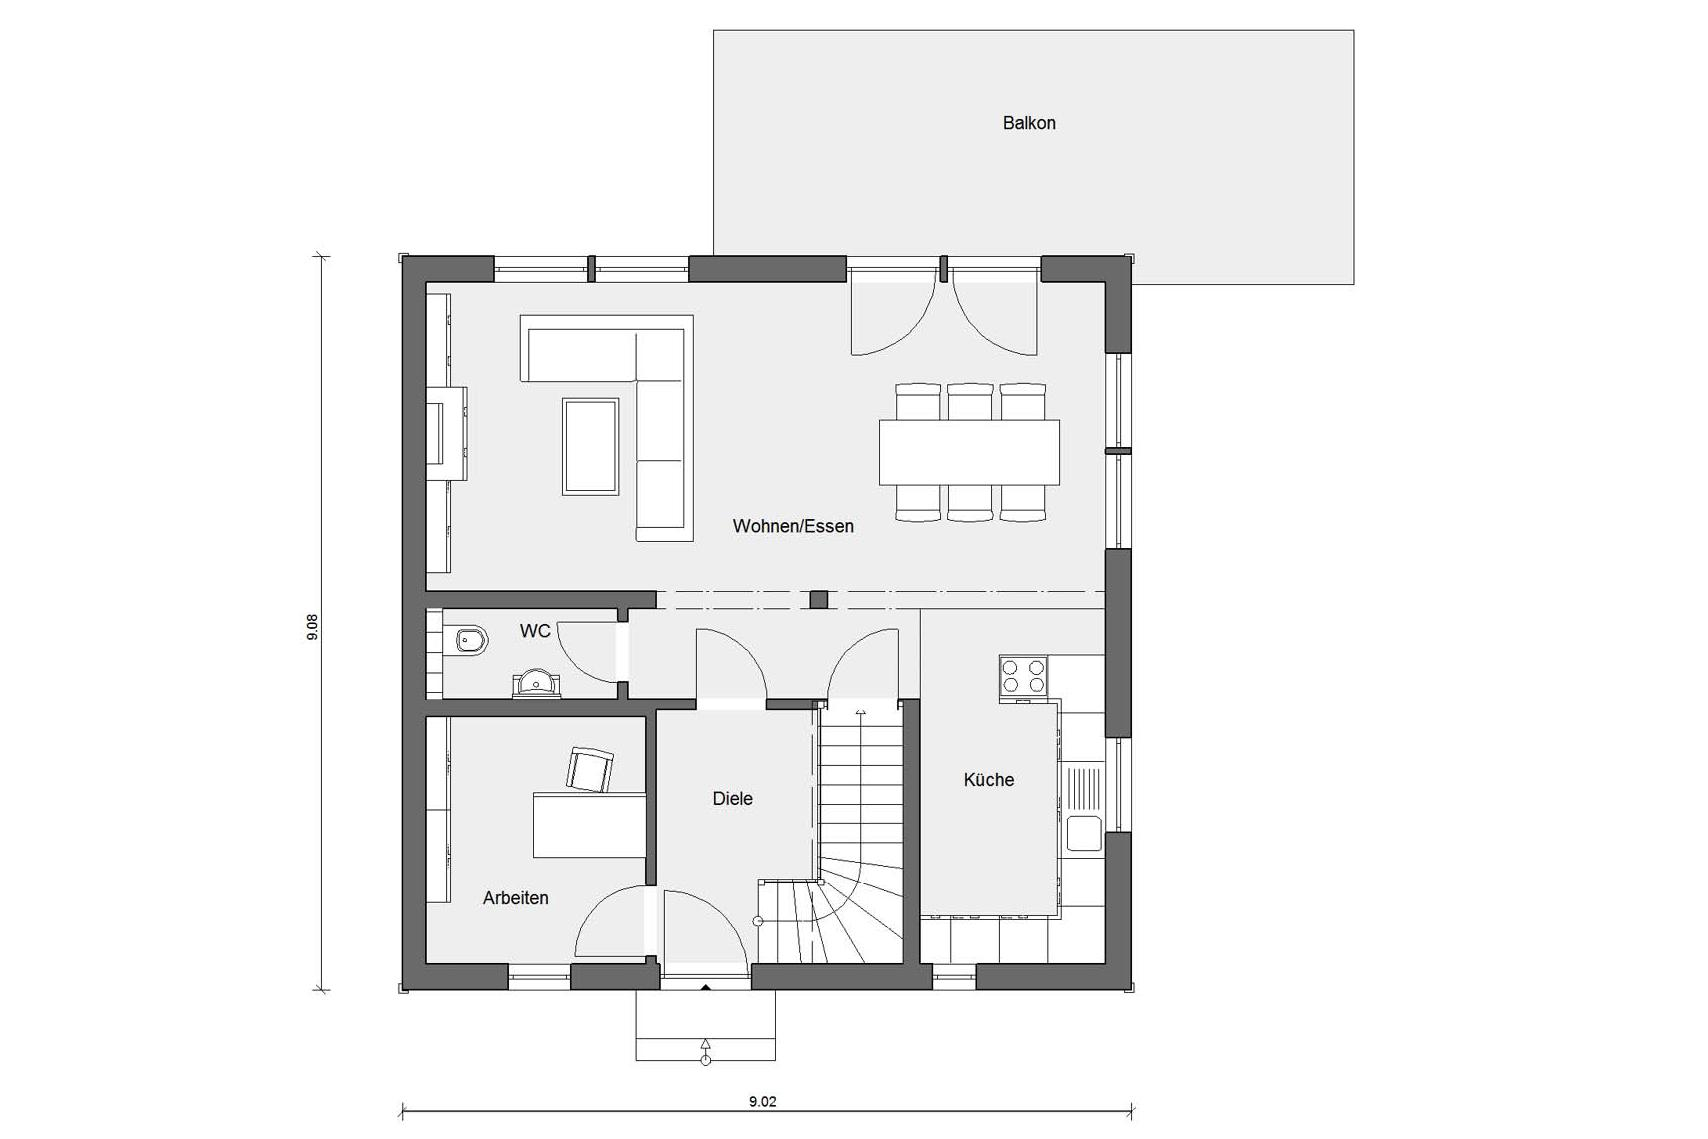 Floor plan ground floor D 15-134.1 Semi-detached house in the Swedish style